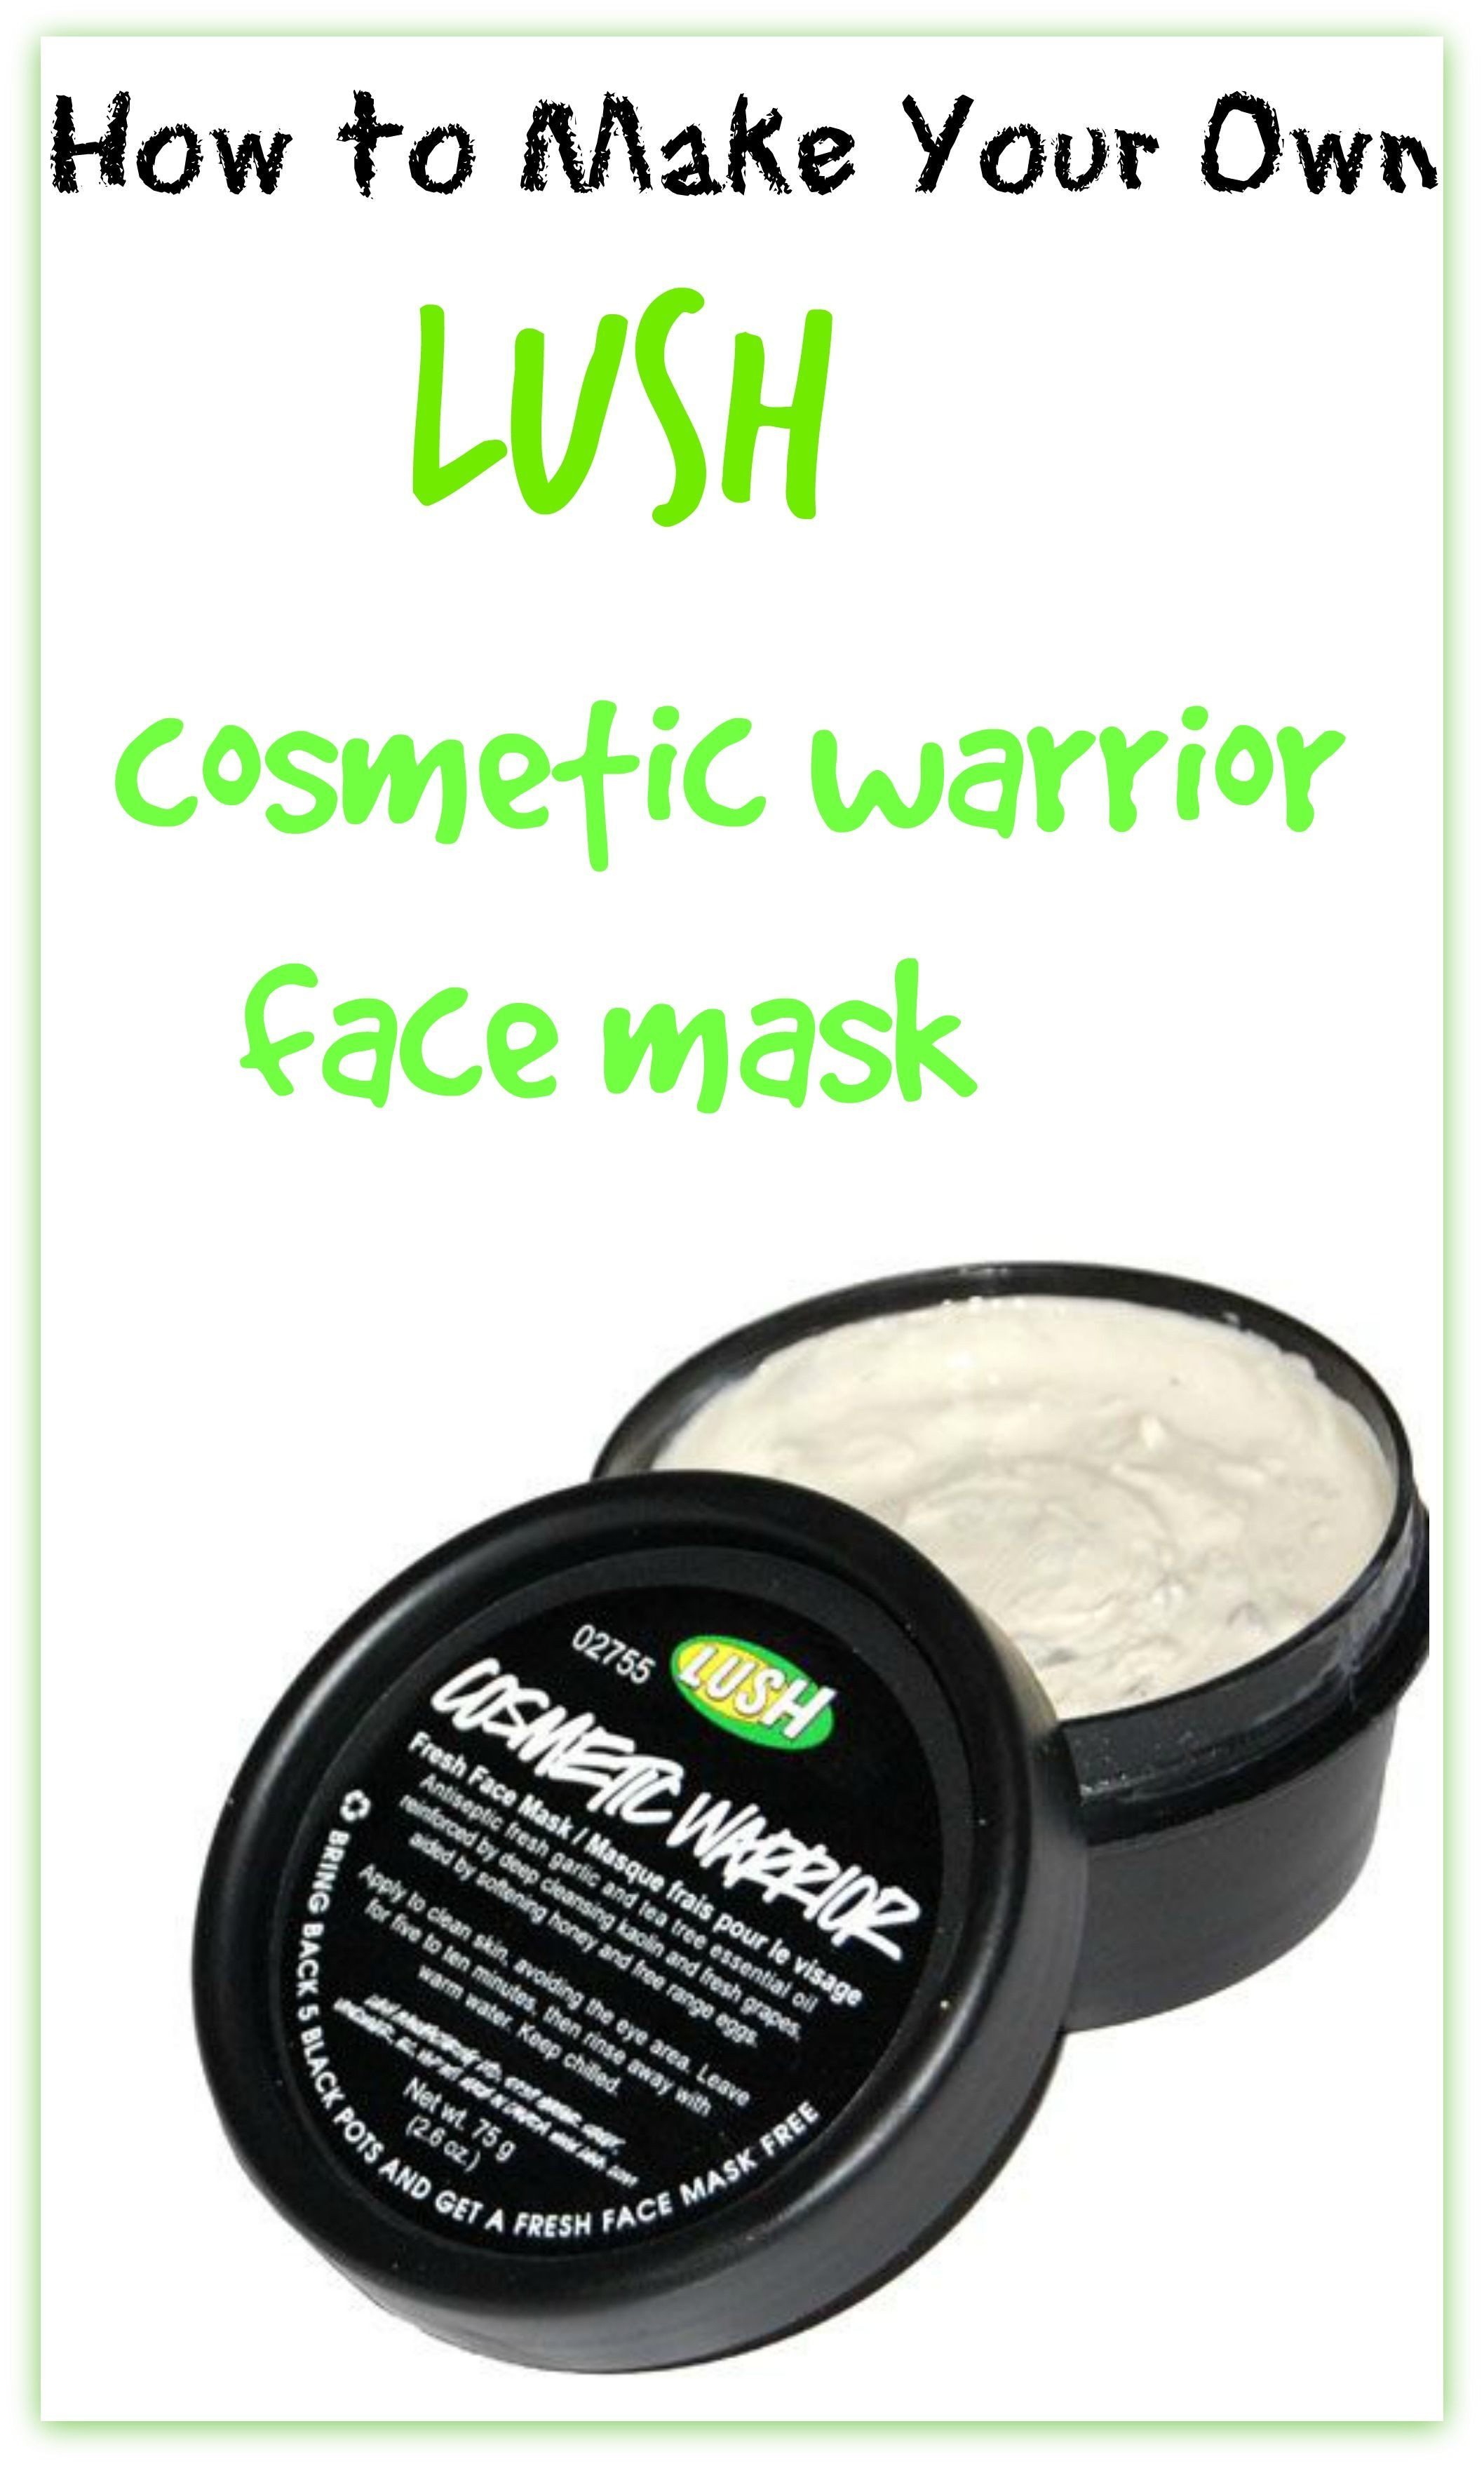 DIY Lush Face Mask  How to Make Your Own Lush Cosmetic Warrior Face Mask